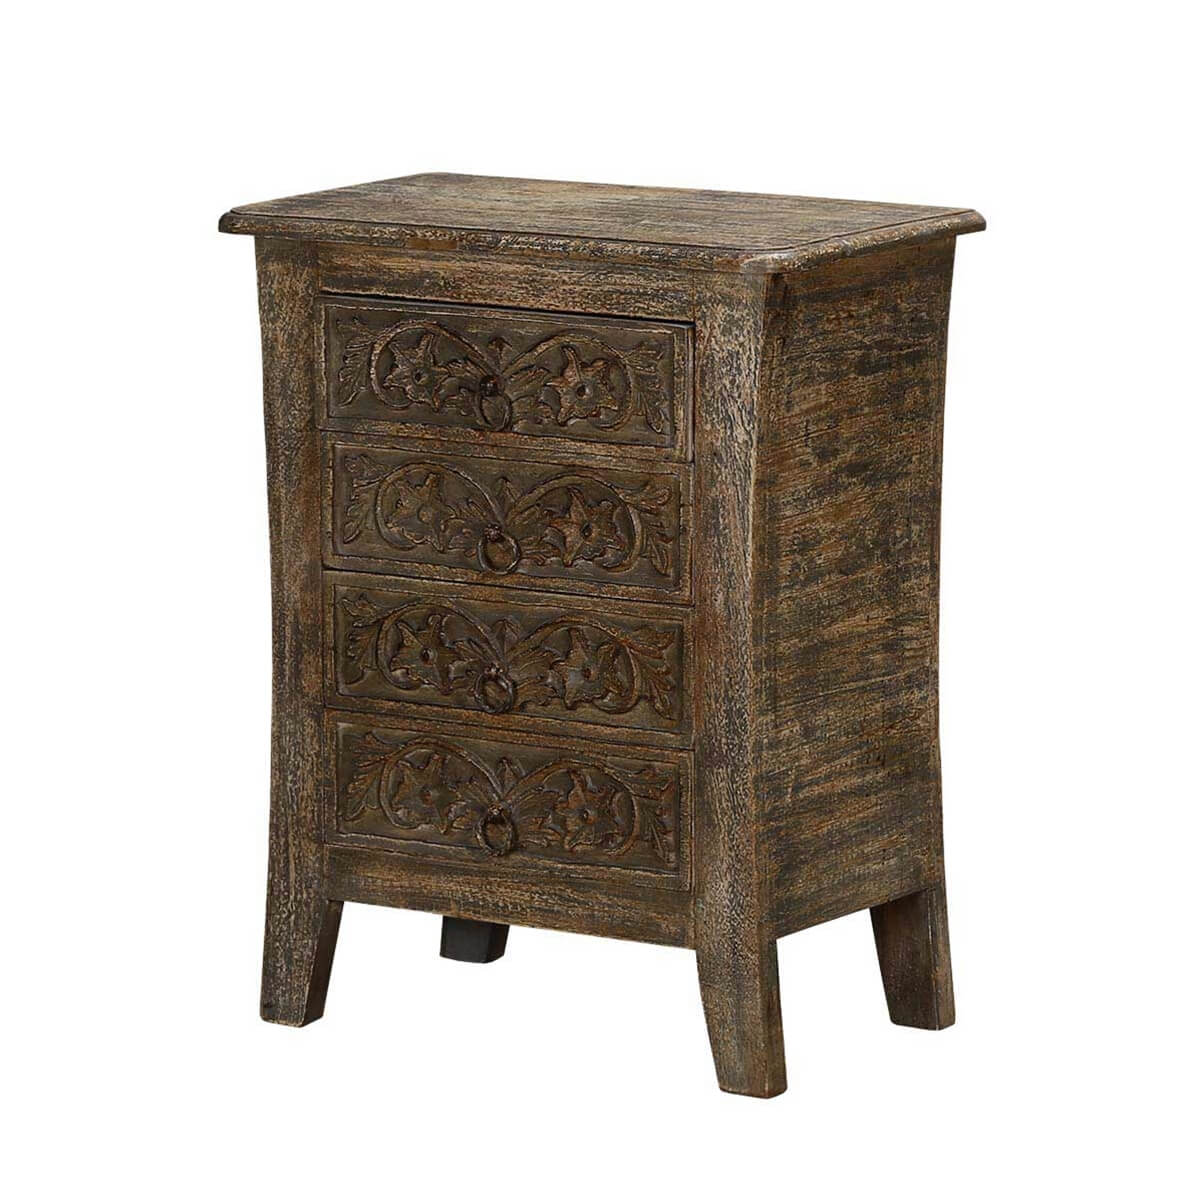 Palazzo Handcrafted Rustic Solid Wood 4 Drawer Nightstand